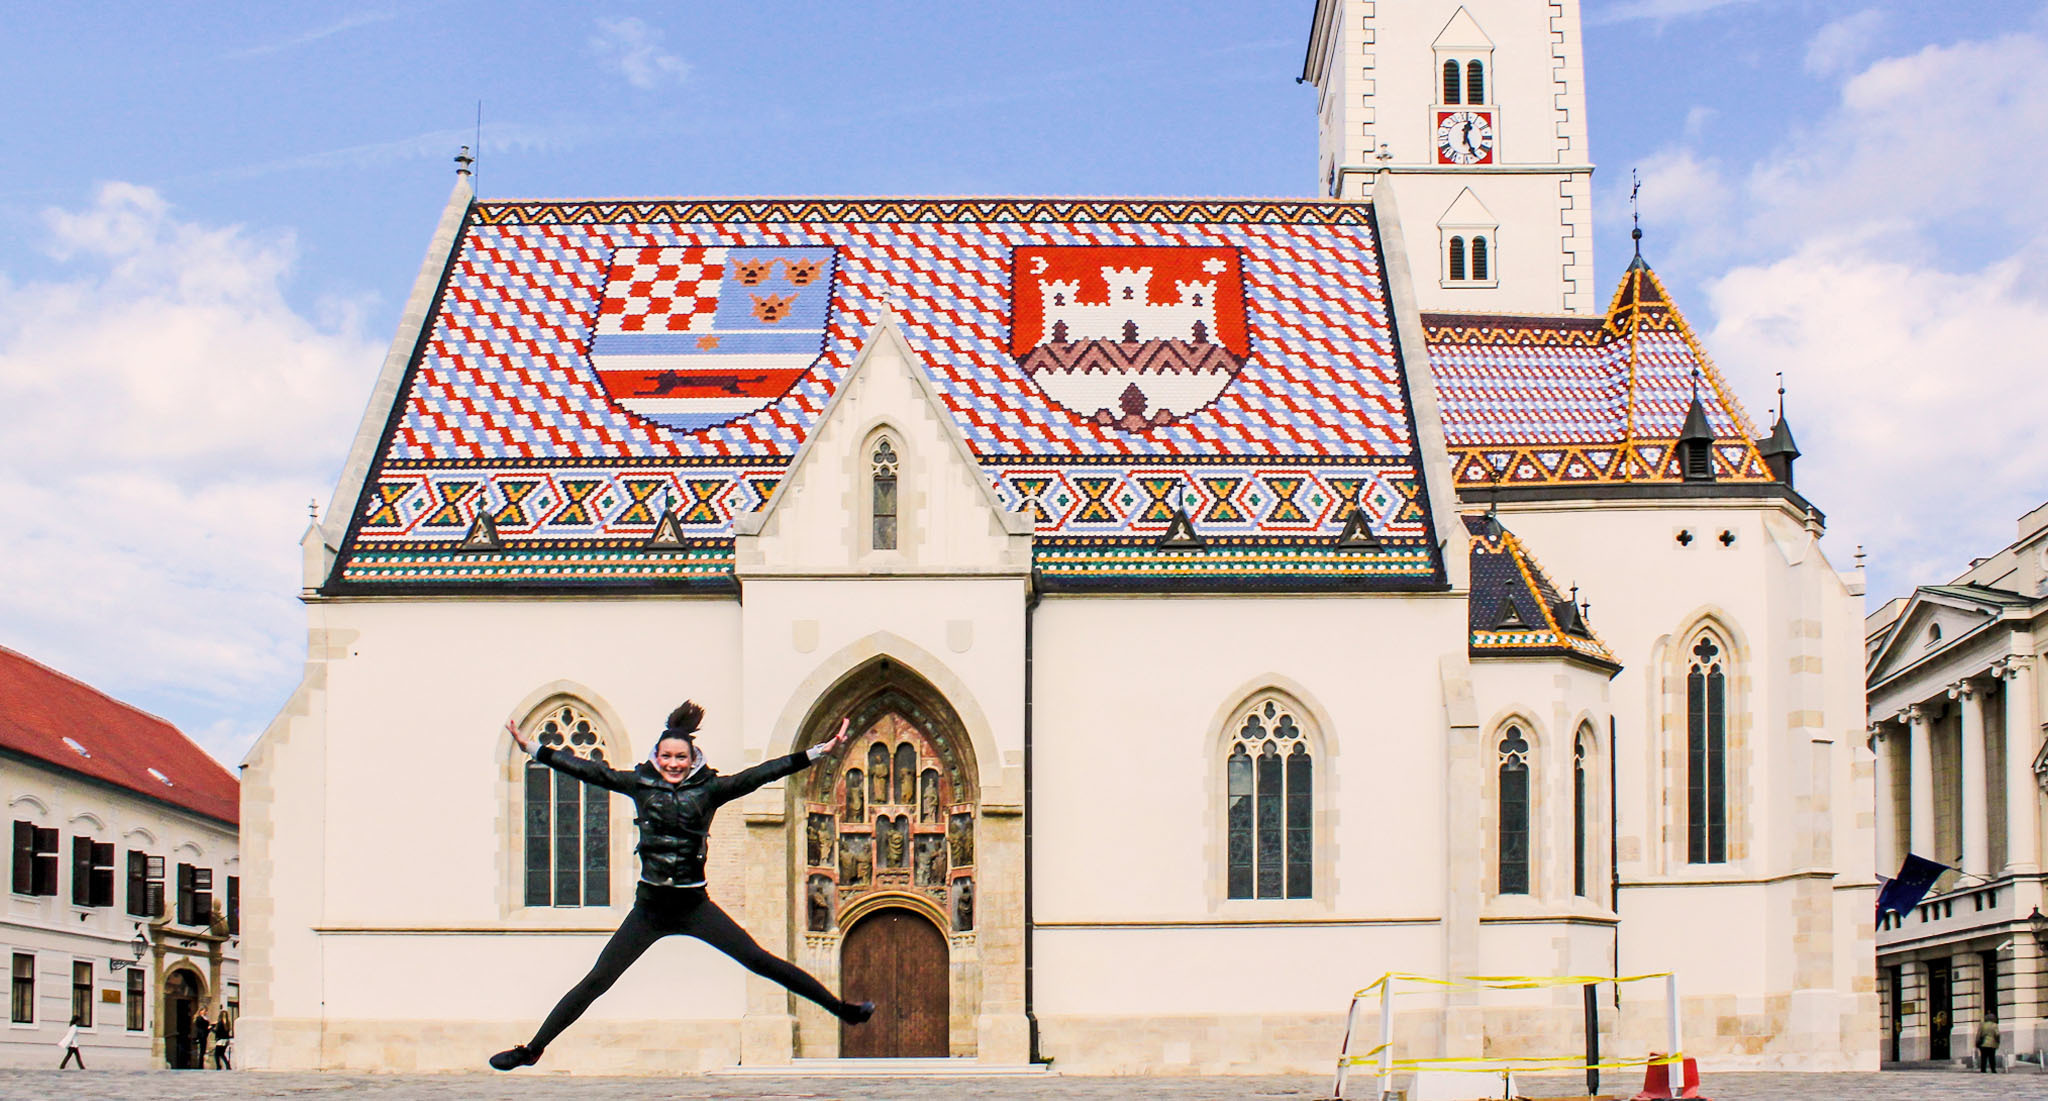 Chillout Hostel Zagreb, hostels and backpackers, zagreb, croatia